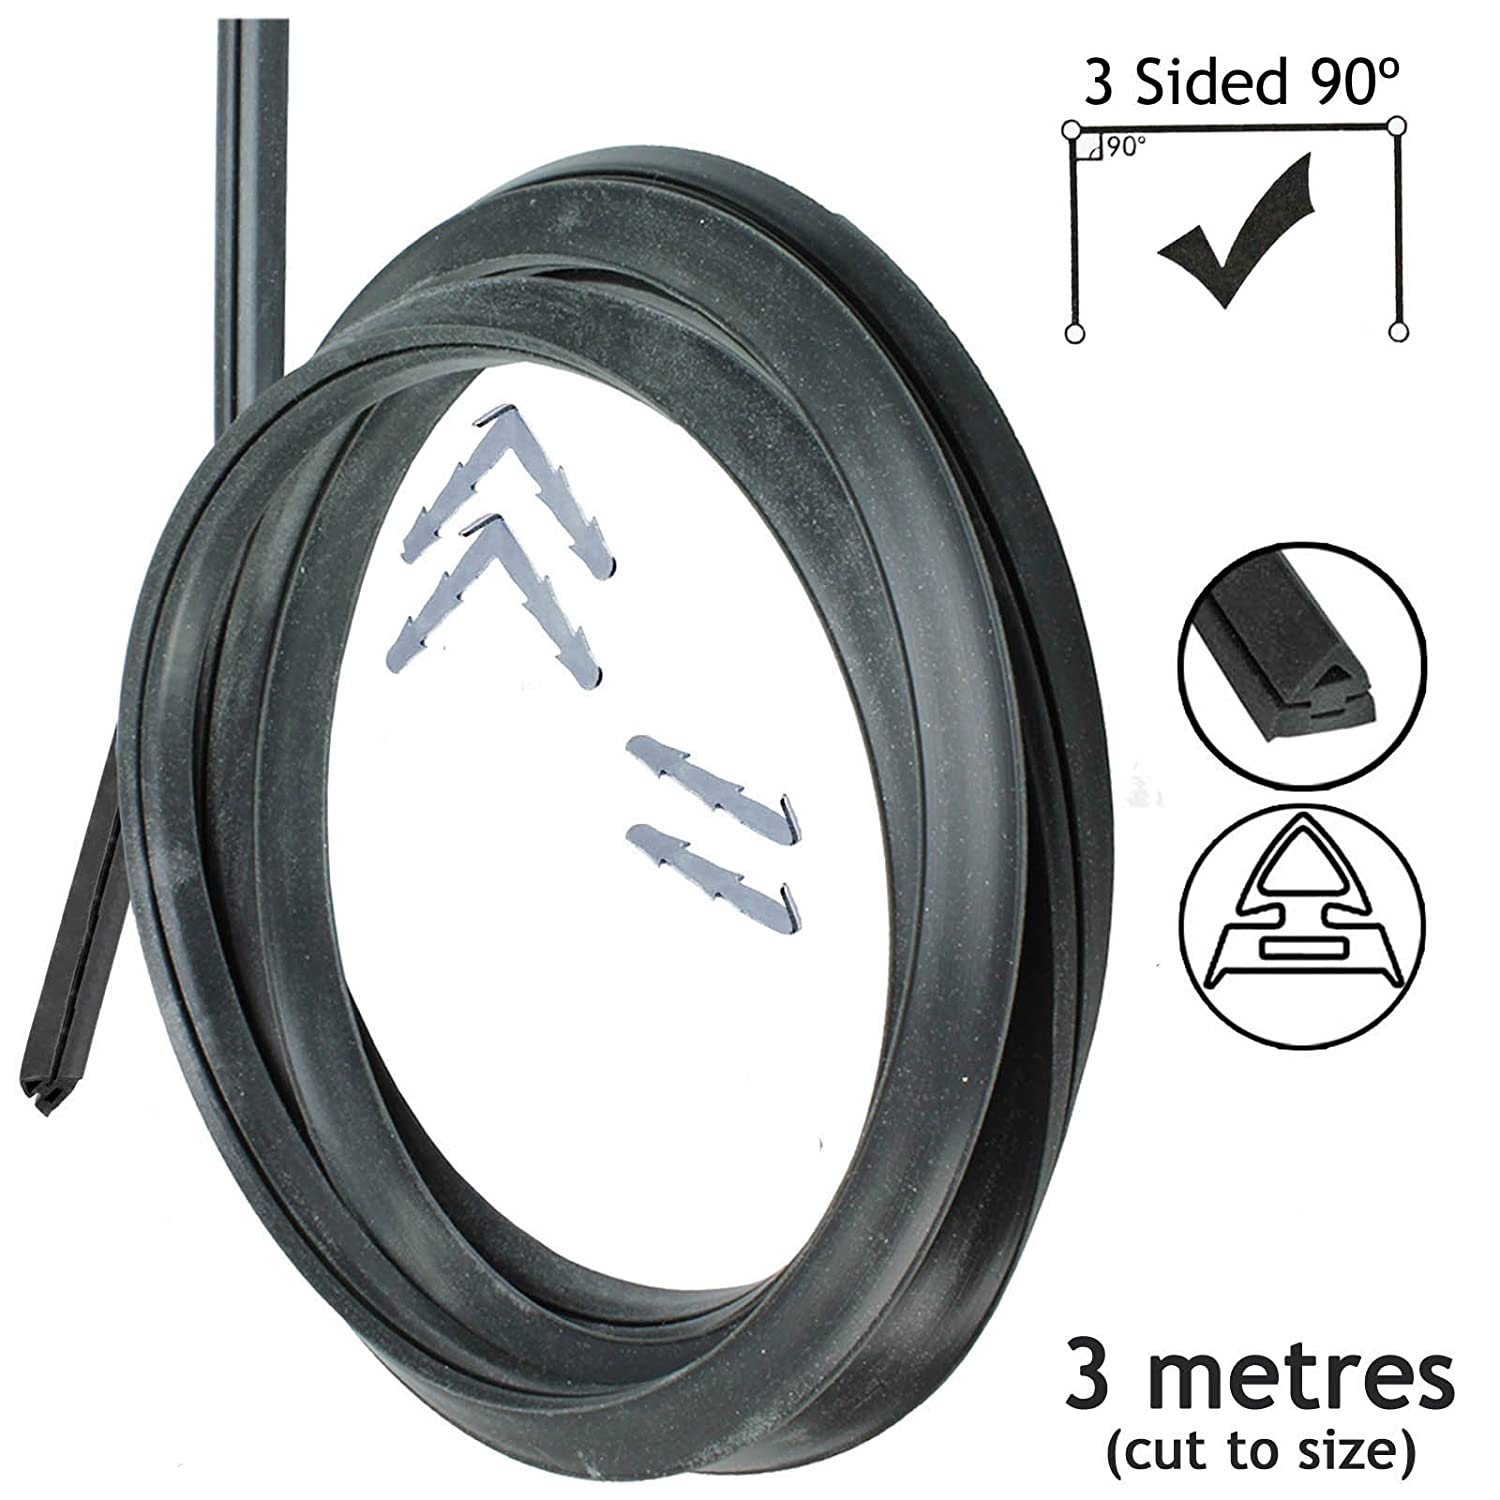 Spares2go Universal 3m Cut to Size Oven Cooker Door Seal 3 Sided (90 Clips)